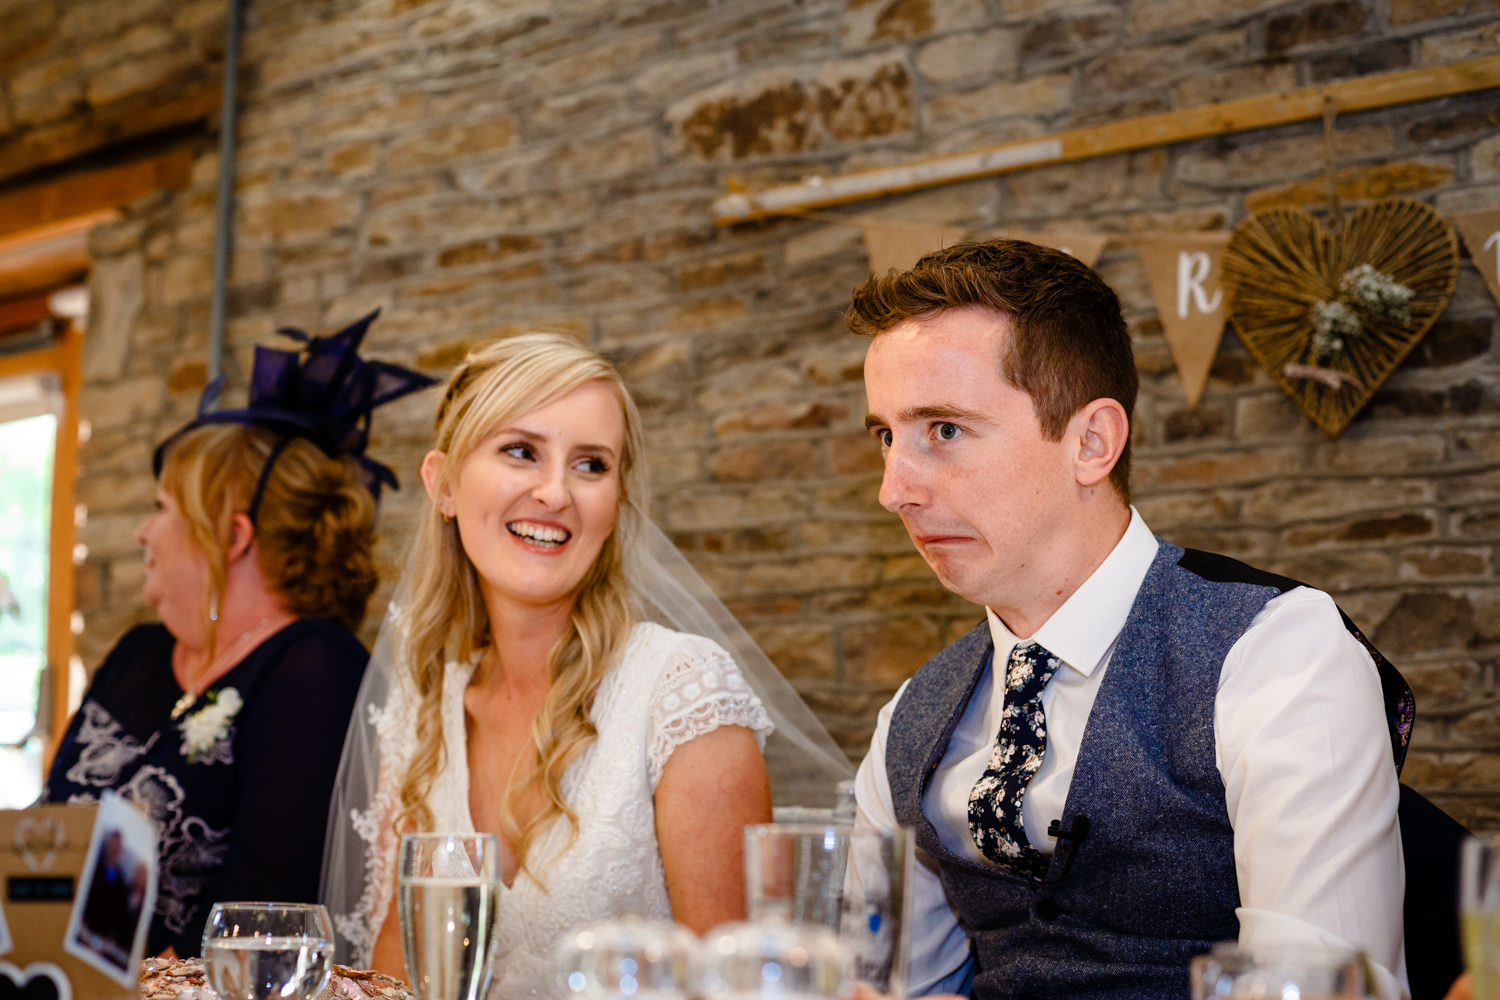 Katie-Luke-Huddersfield-wedding-photographer-Katie-Luke073.jpg